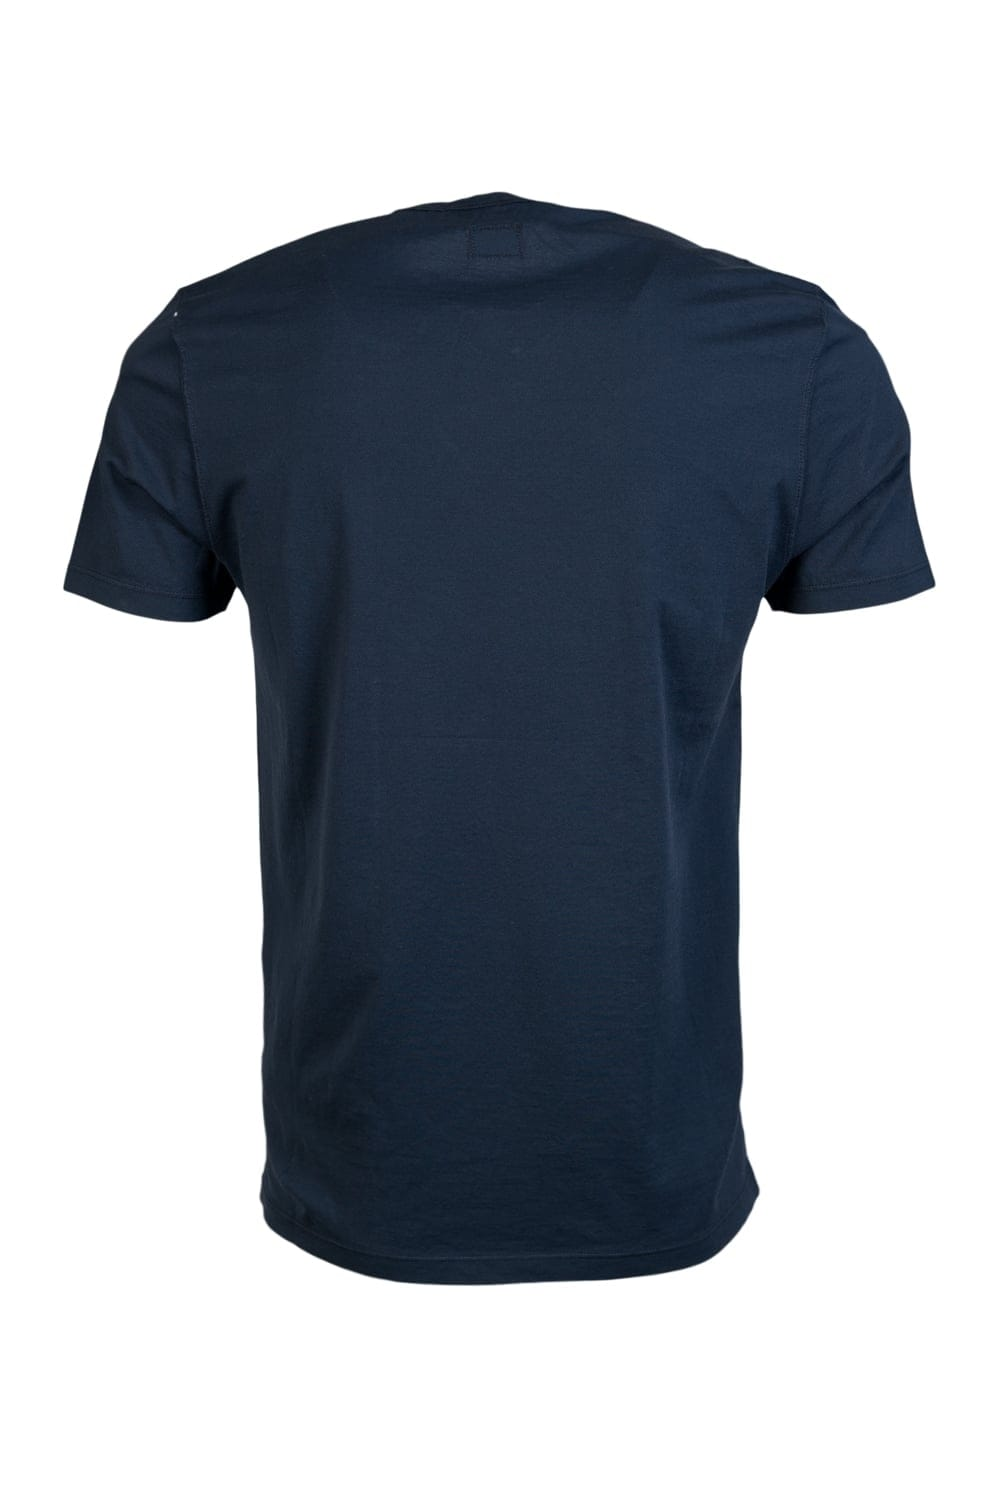 Cp company t shirt cpuh02054d00444 881 c from for T shirt for company